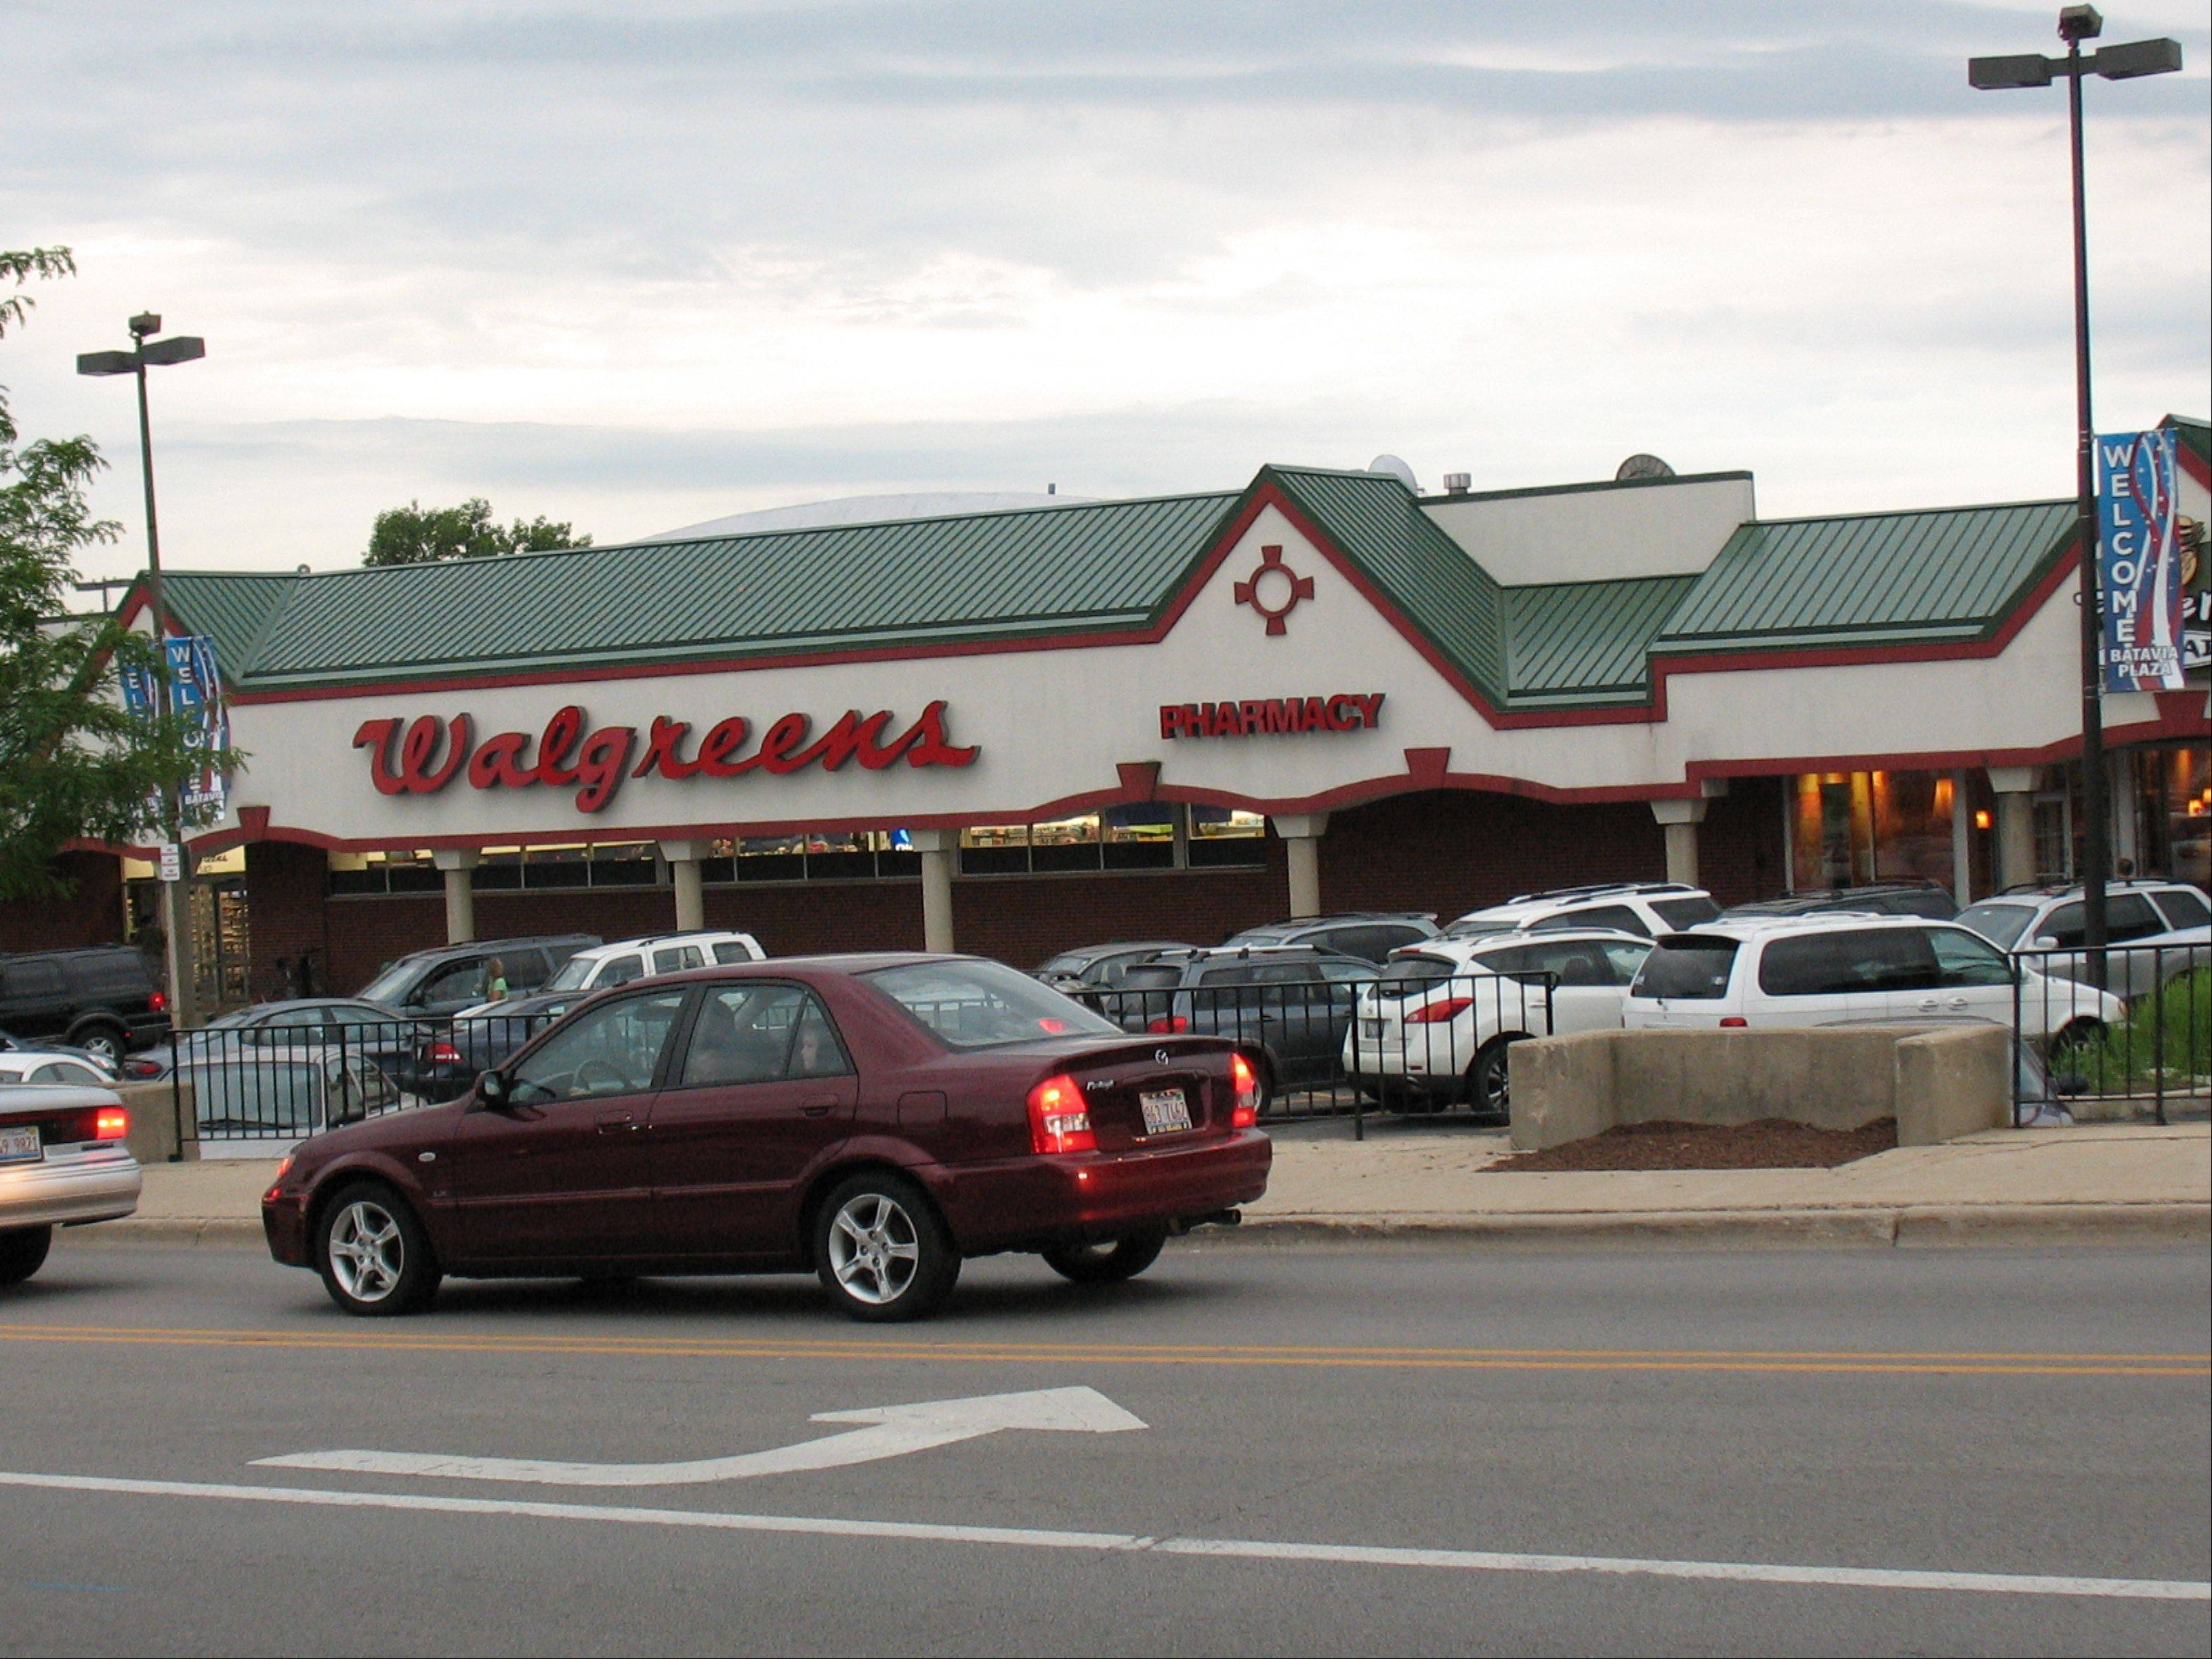 Walgreens proposes to replace this current store in downtown Batavia with a free-standing one next door.